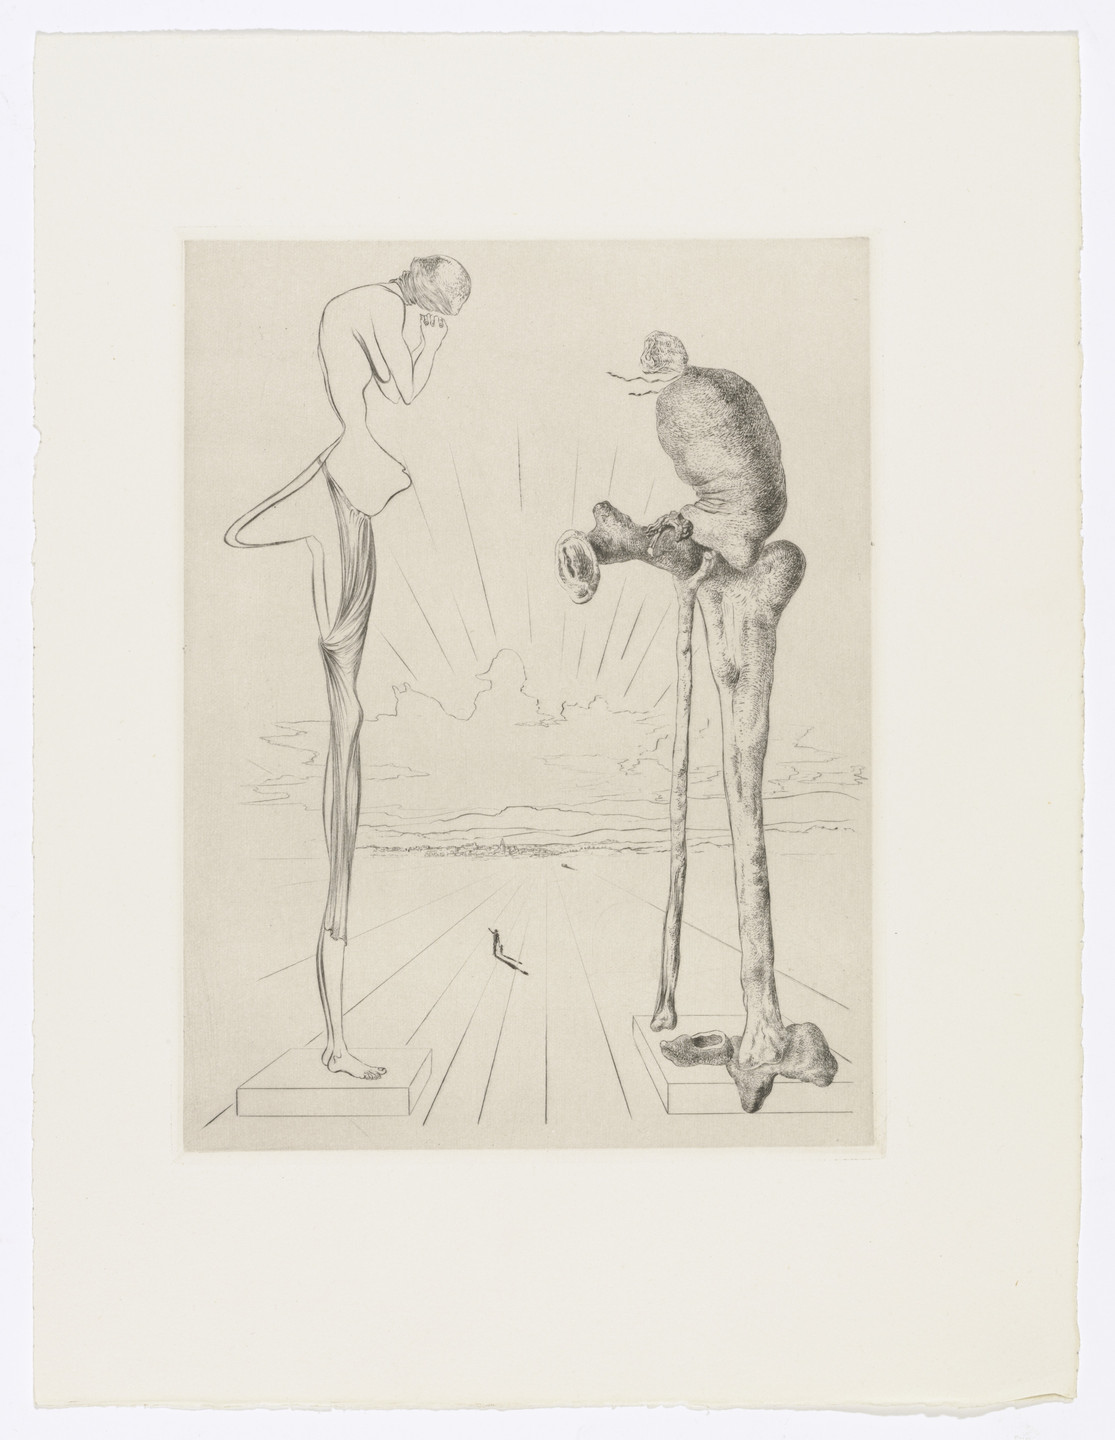 Salvador Dalí. Plate (facing page 96) from Les Chants de Maldoror (The Songs of Maldoror). 1934